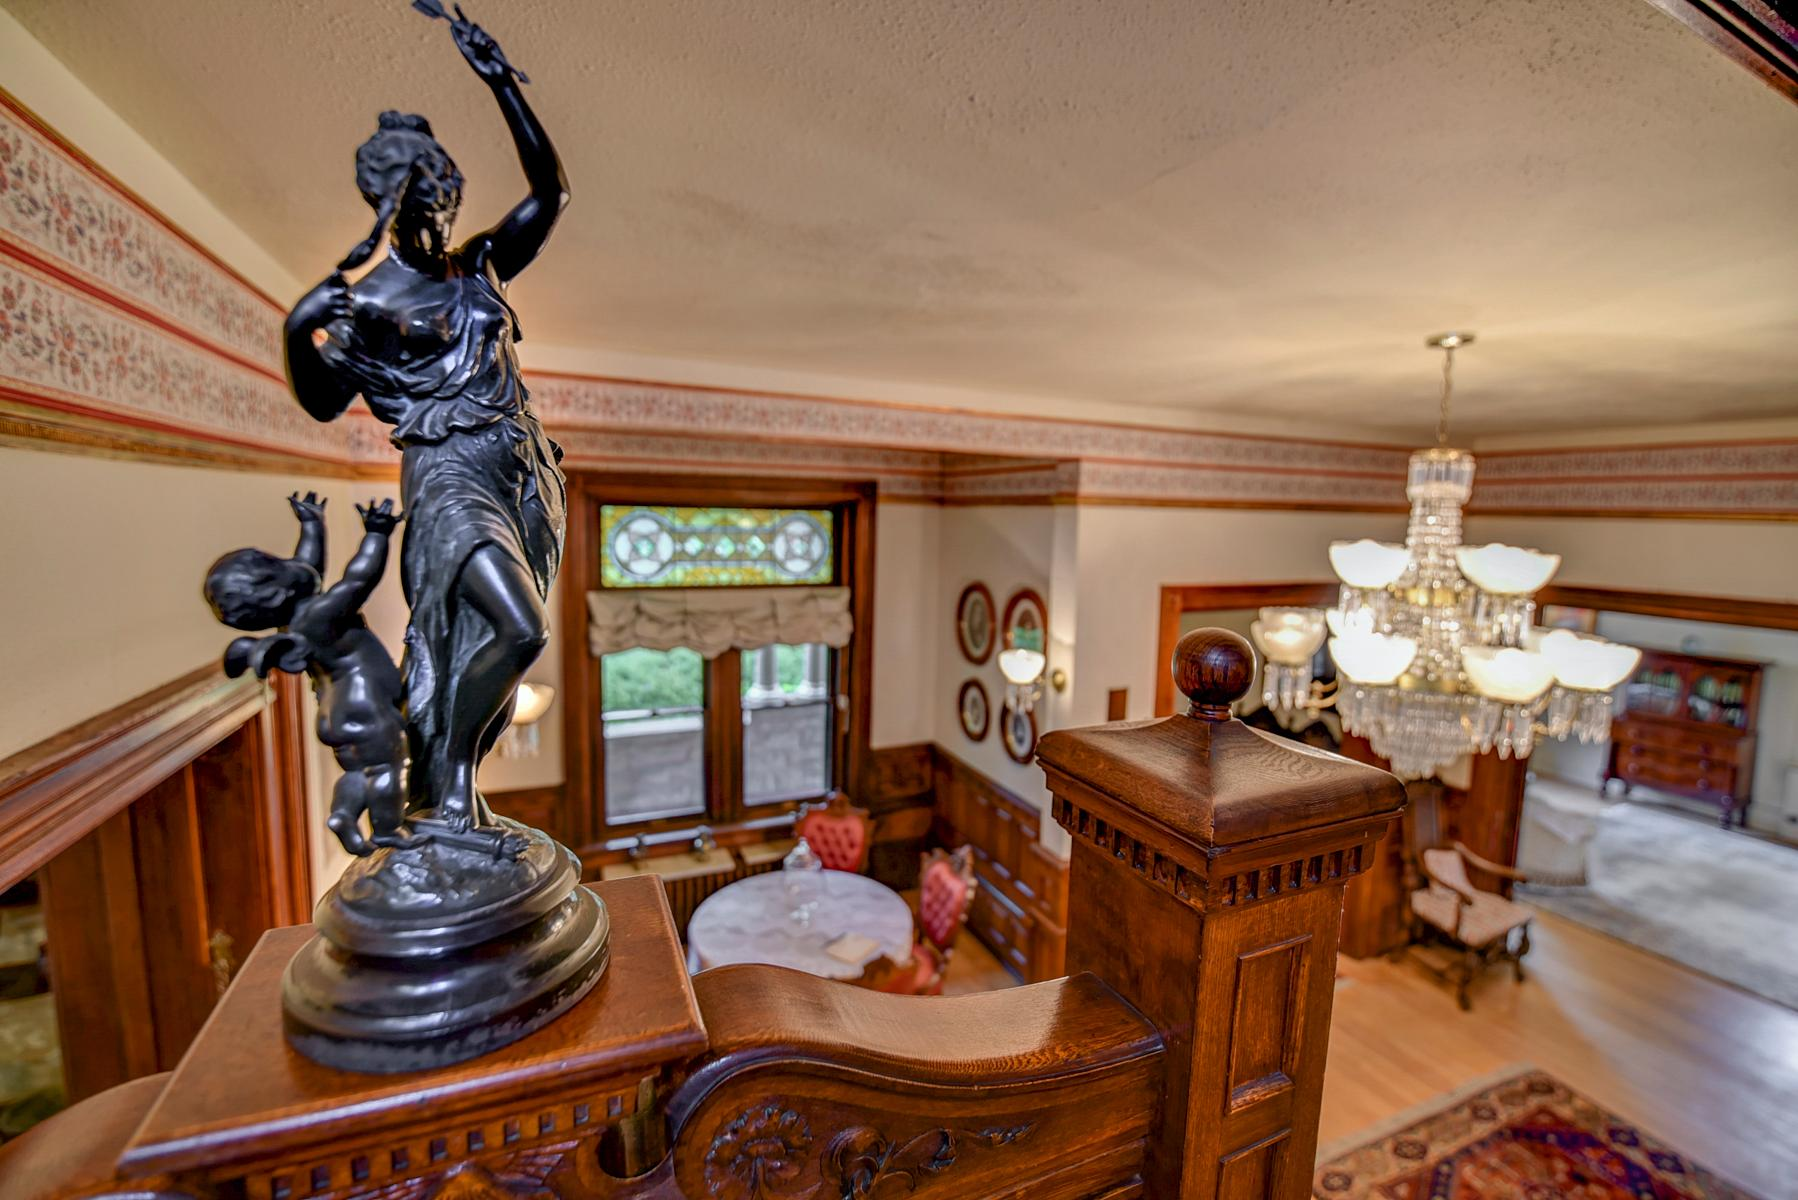 Never before on the market. For over 125 years, the Moore-­Cunningham Queen Anne mansion on Warm Springs Avenue in Boise has been owned exclusively by one family. Untouched by time and replete with character and authentic details, the home has retained the classic appeal of a bygone era as it remains remarkably unaltered. This home was the first on Warm Springs Avenue to utilize the area's natural geothermal water, which is still in use today for heating both house and pool. For info call Paige Shafer, 842-8301) (Courtesy Photo)